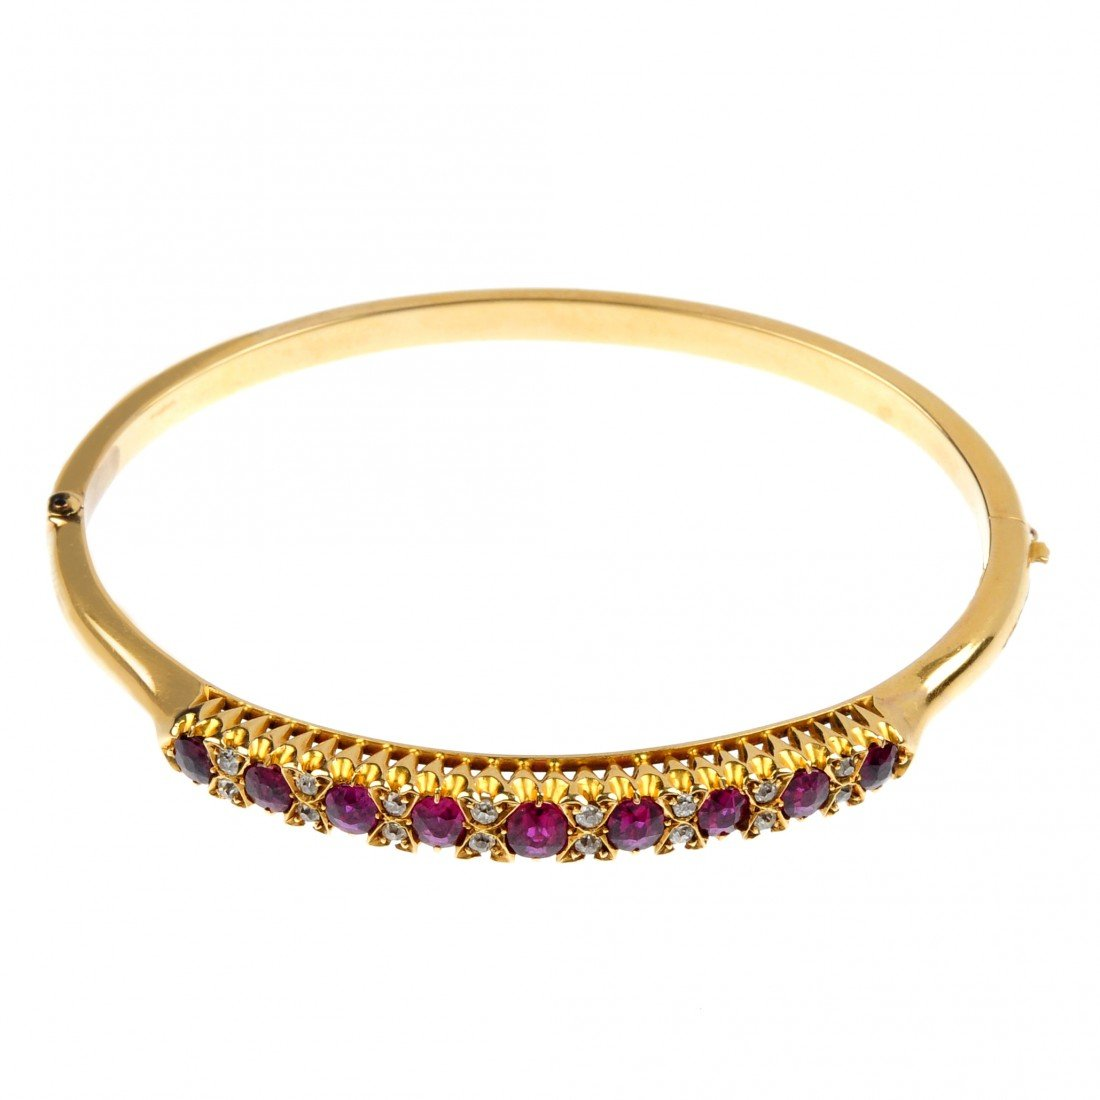 8: A ruby and diamond hinged bangle. The graduated circ